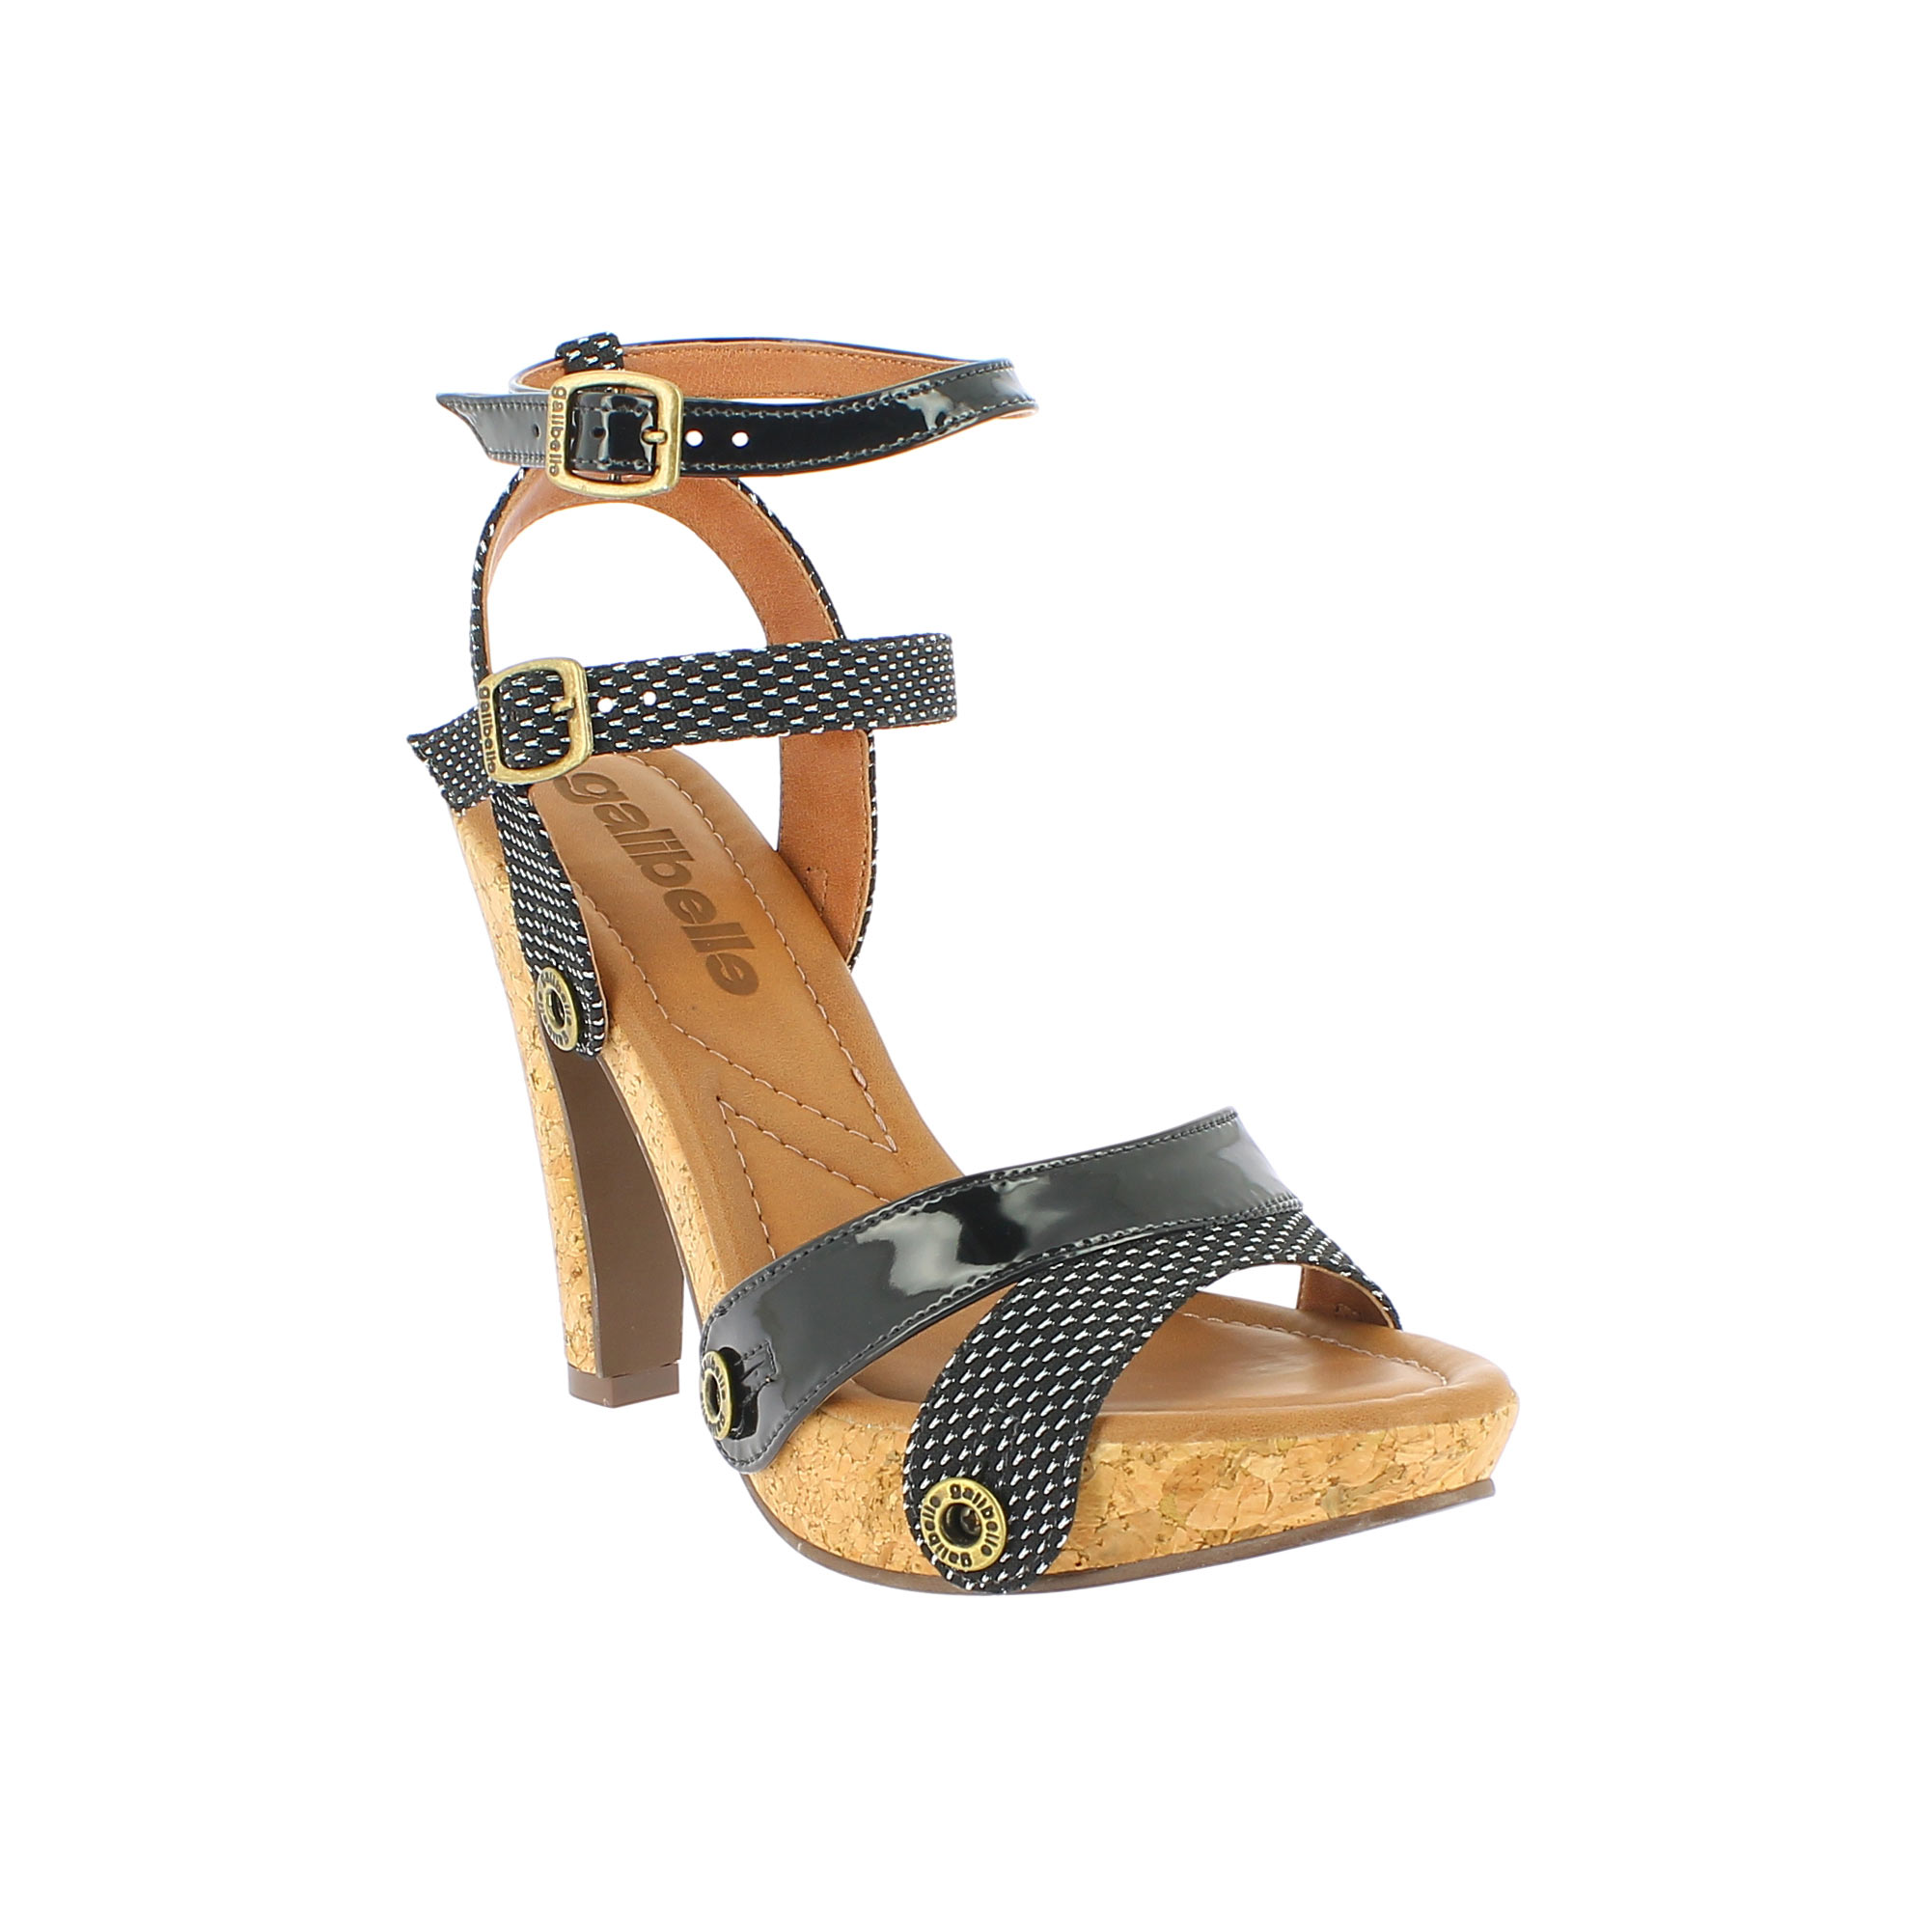 Deisi sandals from Galibelle interchangeable straps and soles